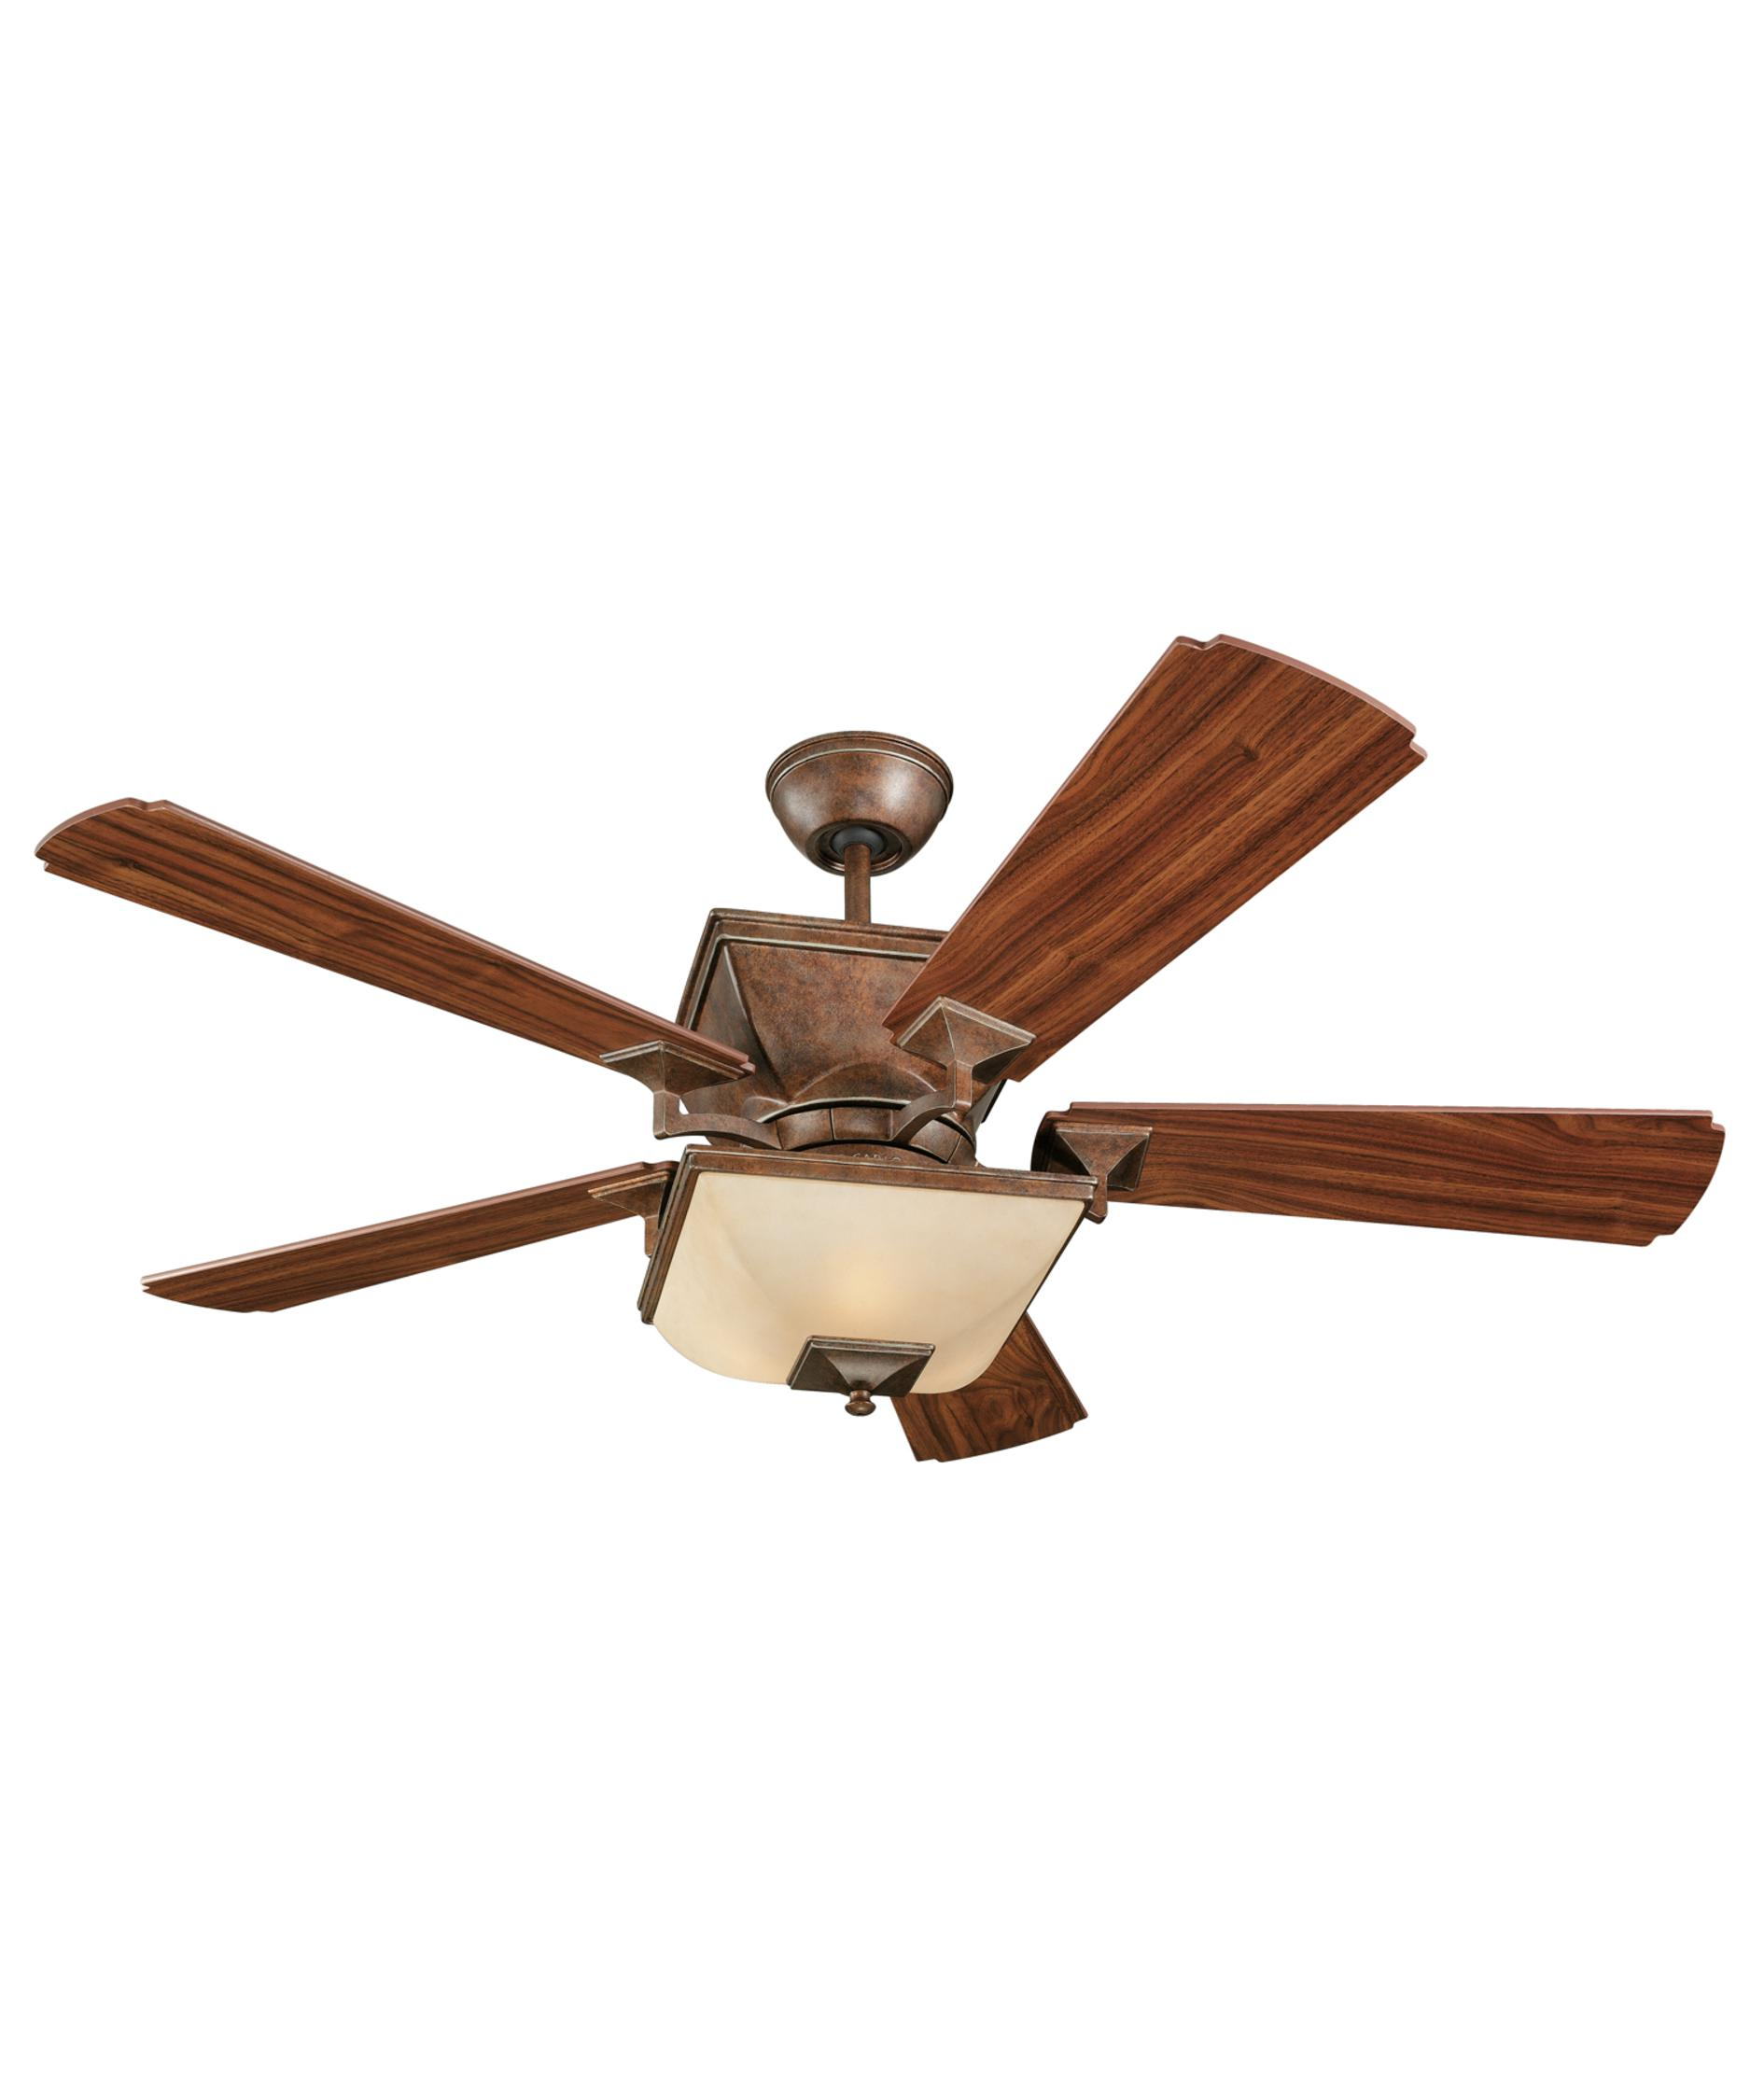 Murray Feiss Ceiling Fan Light Kit: Monte Carlo Town Square 52 Inch Ceiling Fan With Light Kit